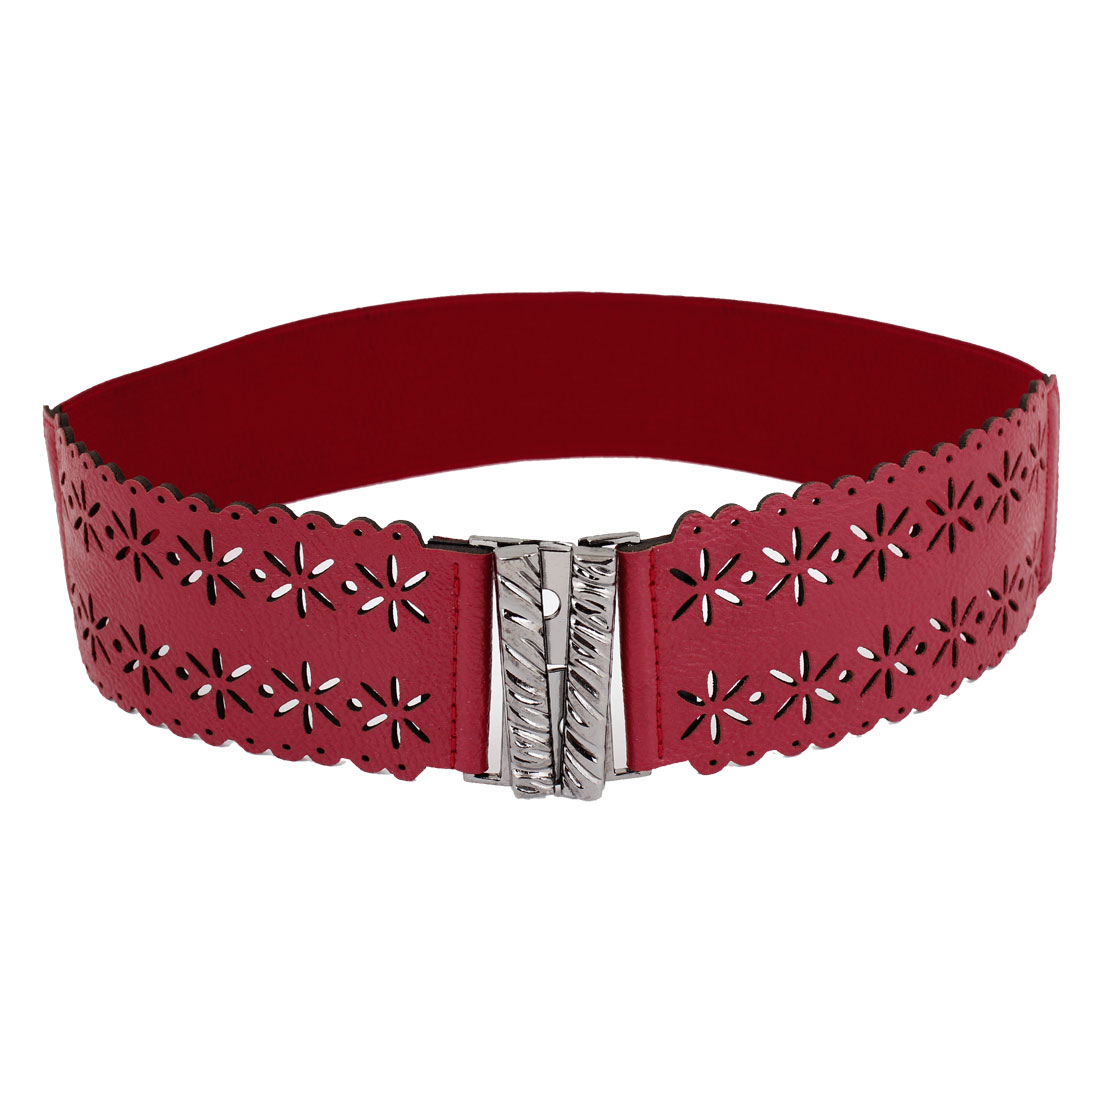 Interlocking Buckle Hollow Out Flower Decor Elastic Waist Belt Red for Women